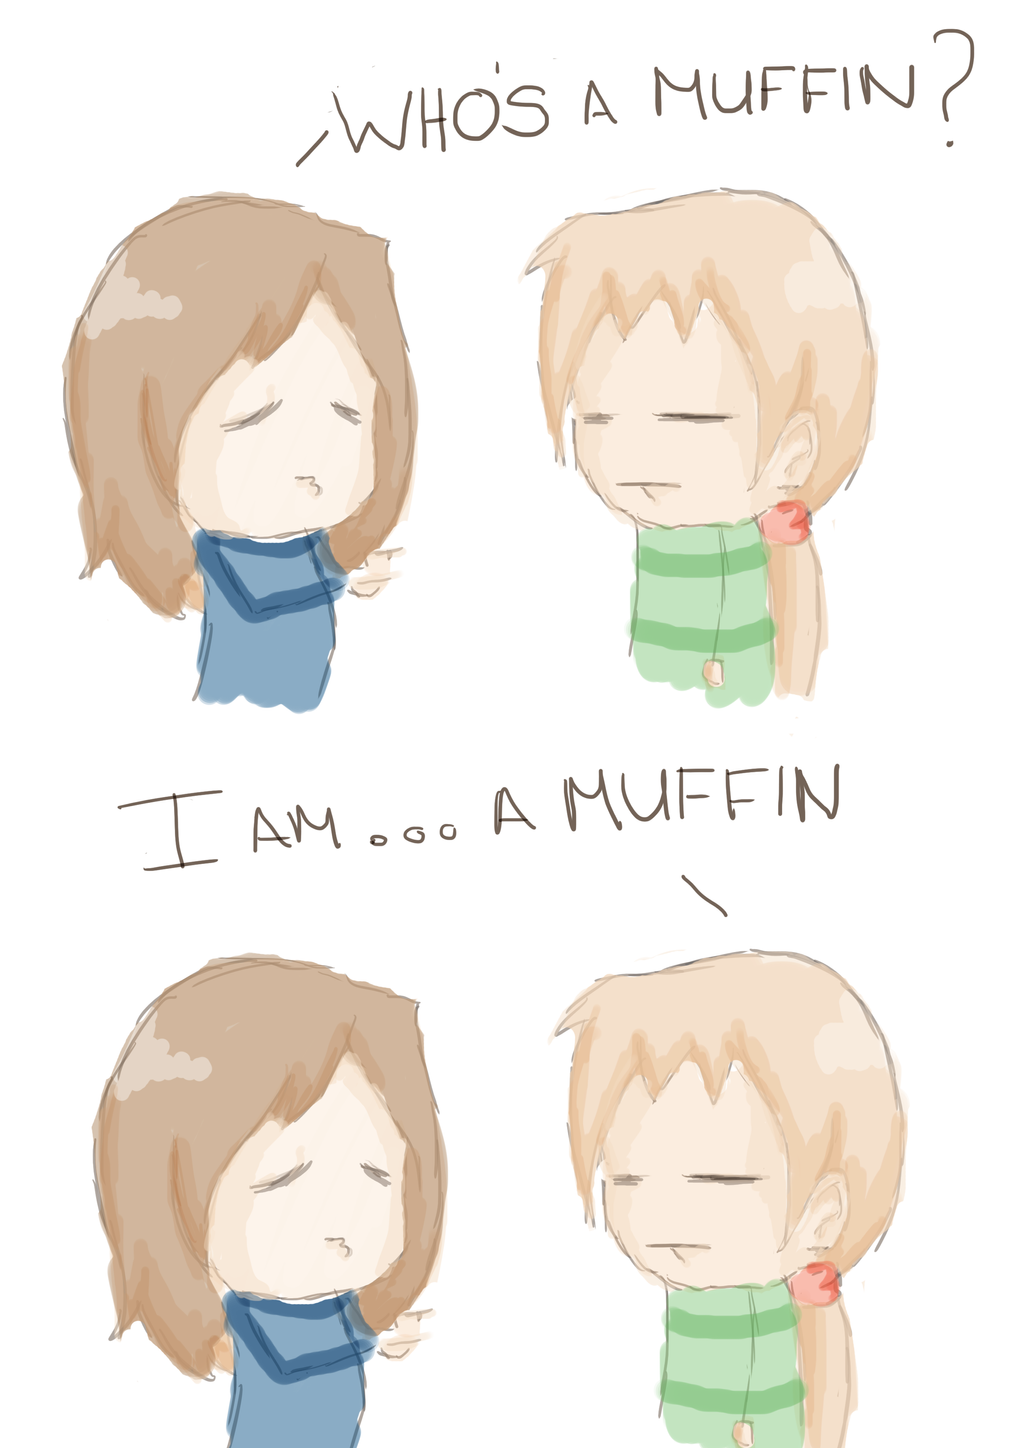 Whos a muffin by JVA-Doodles